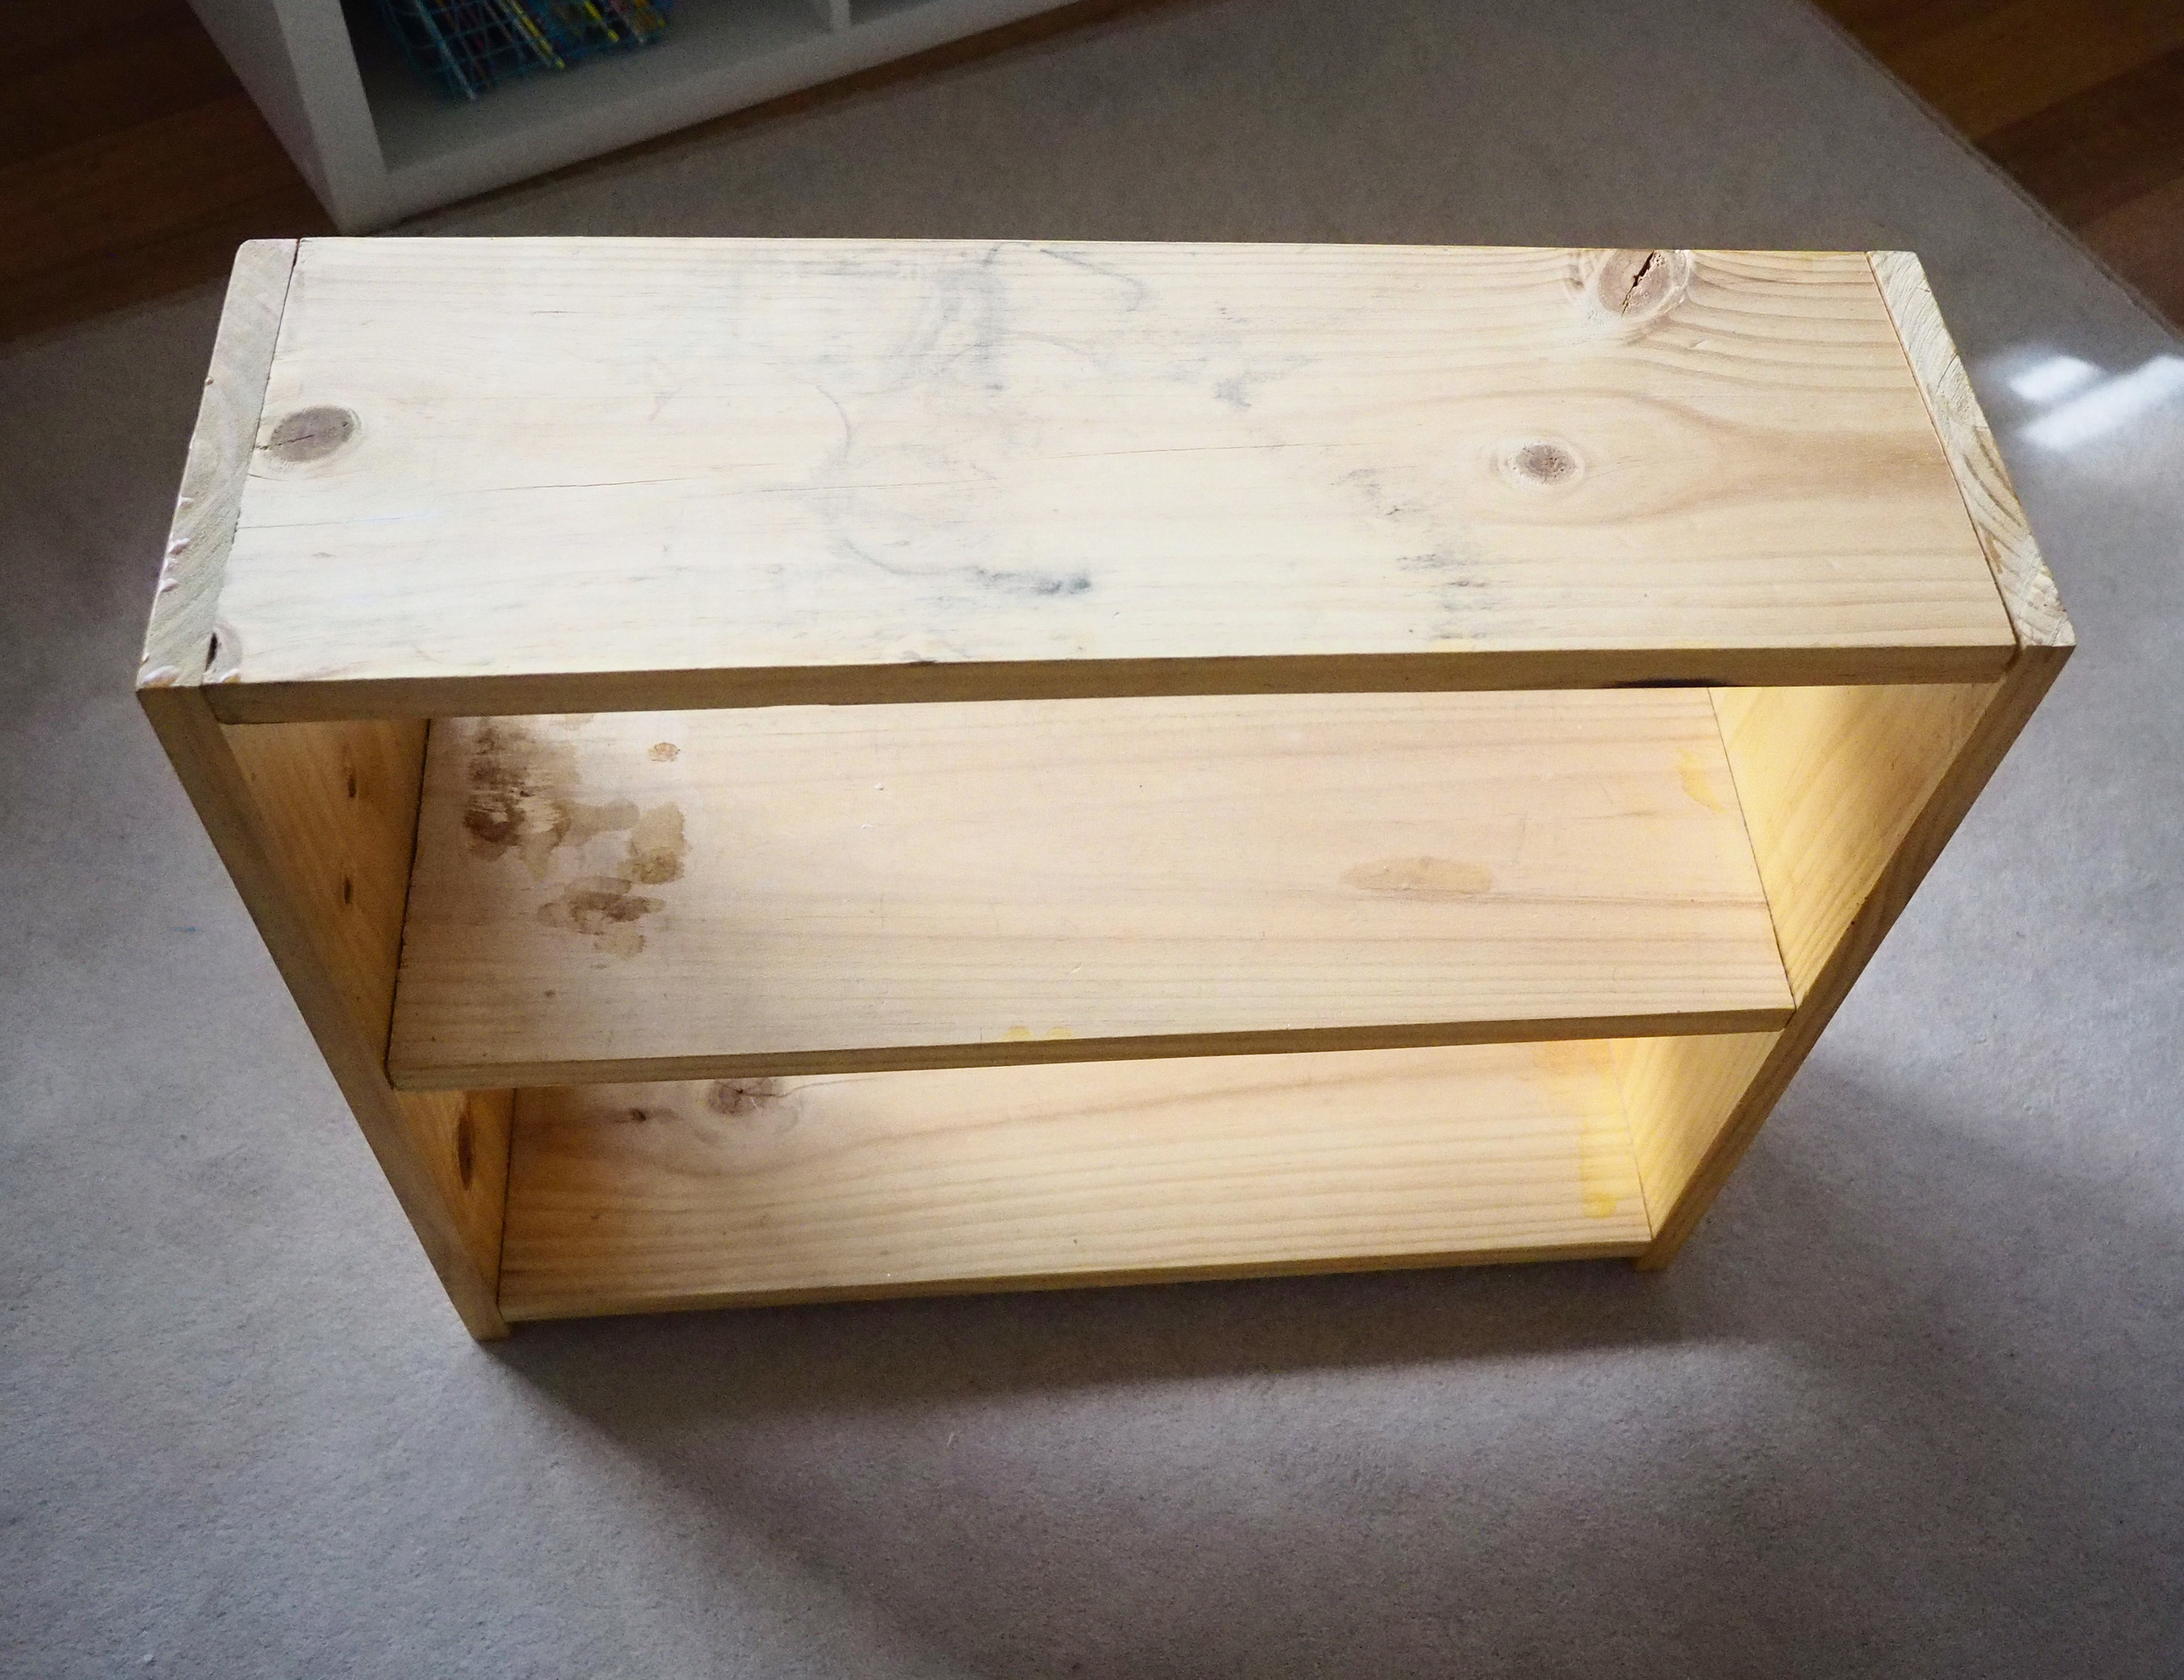 Repurposing an old shoe rack into a bedside table for a child's bedroom